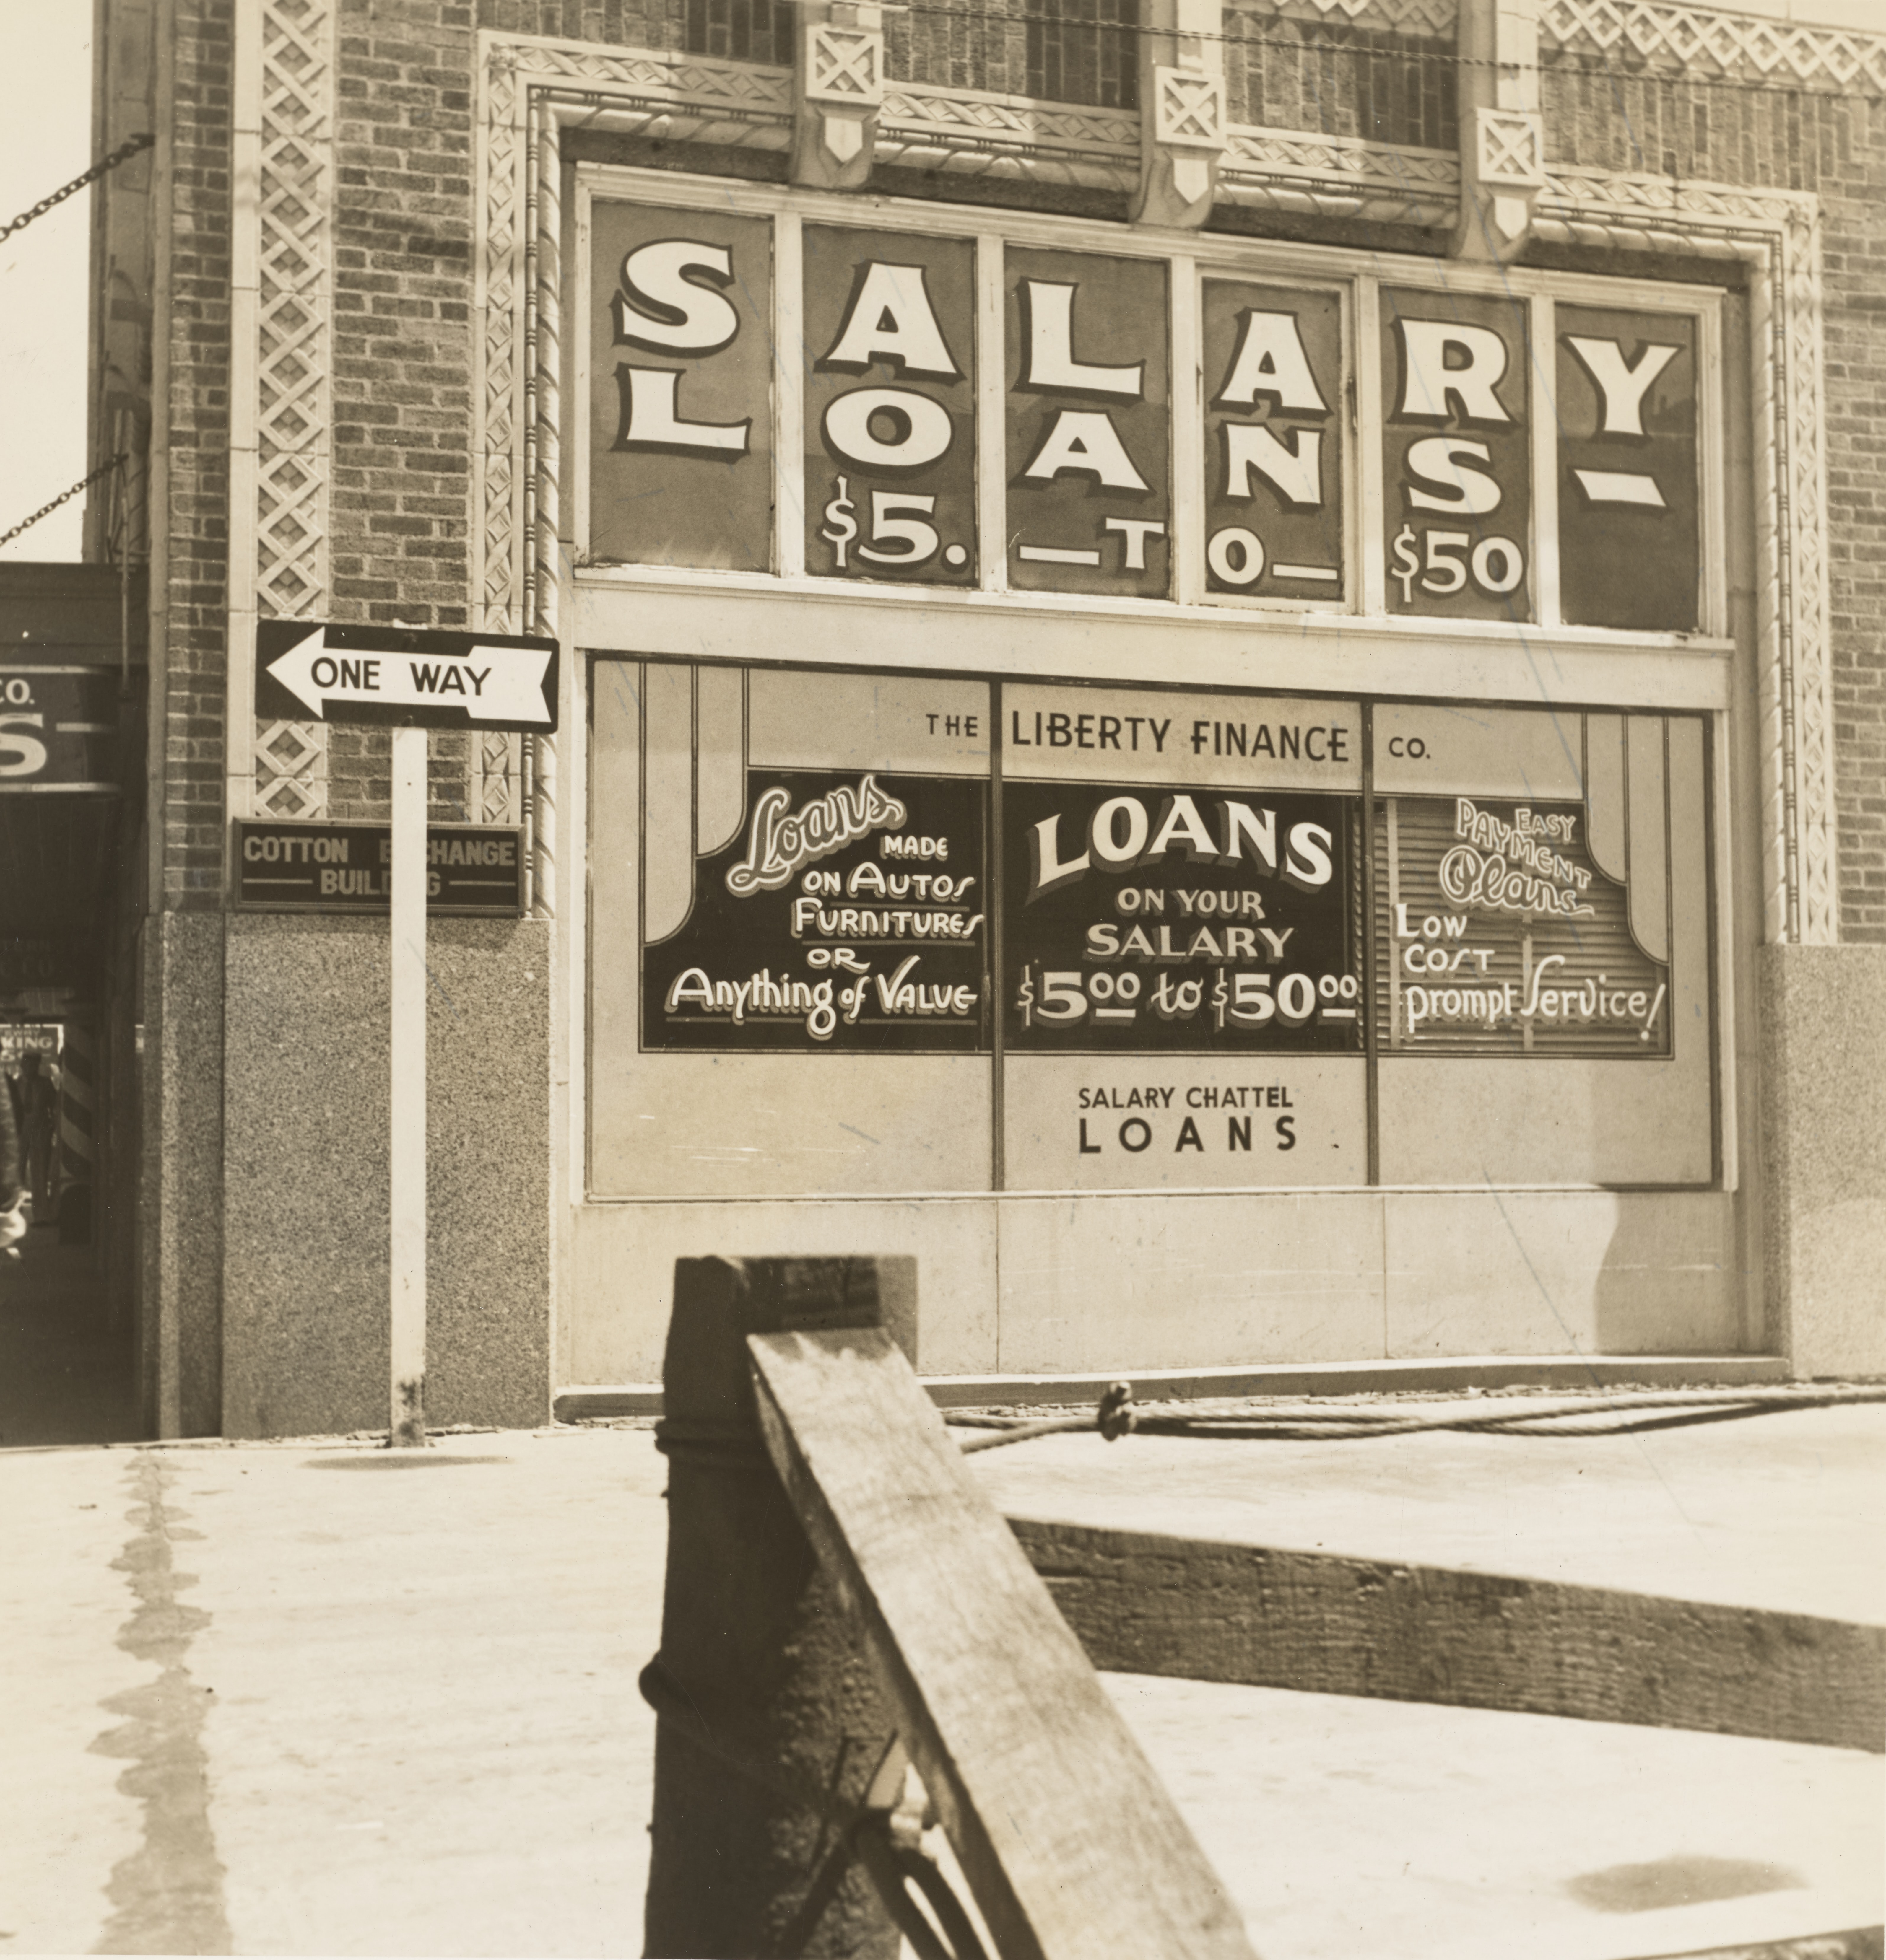 An image of the front of a salary loans business in 1937.